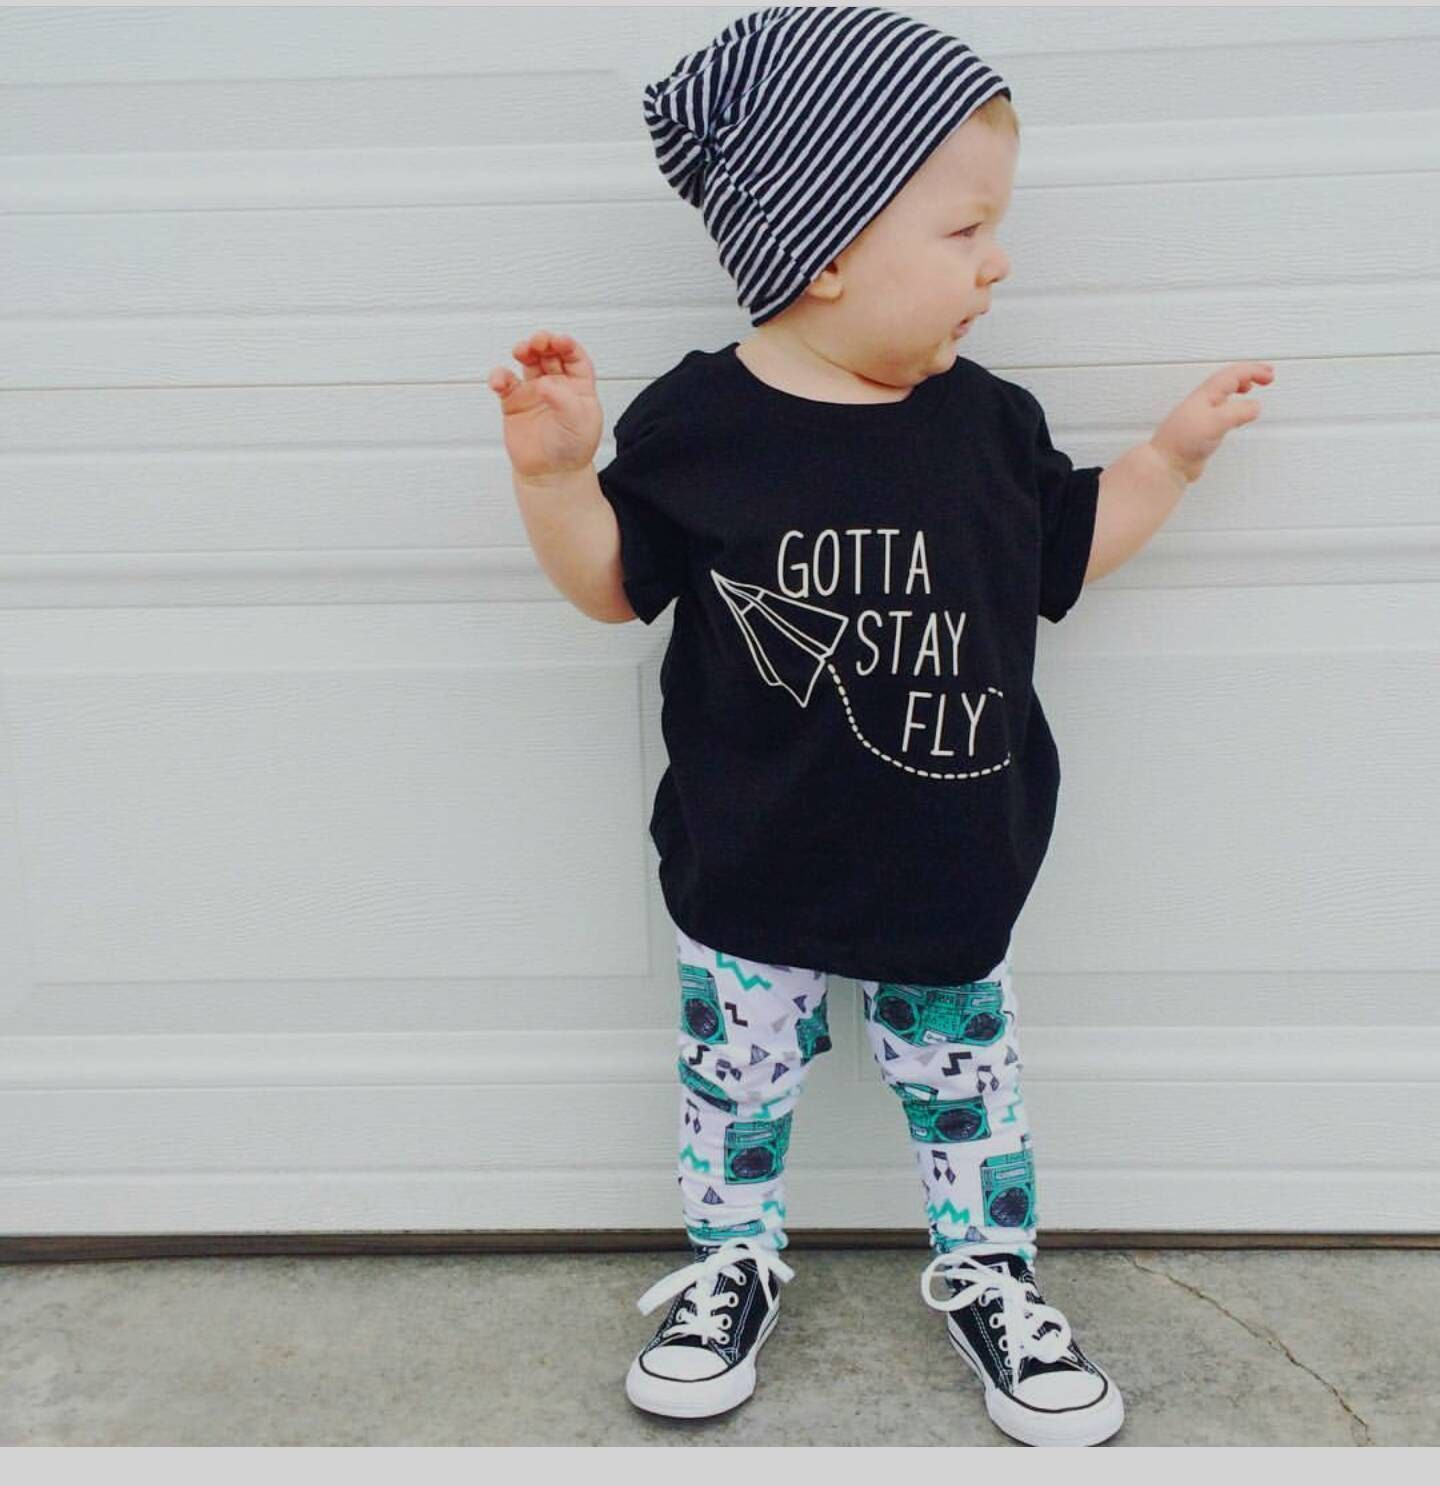 Baby hipster girl clothes idea photo recommendations to wear in spring in 2019